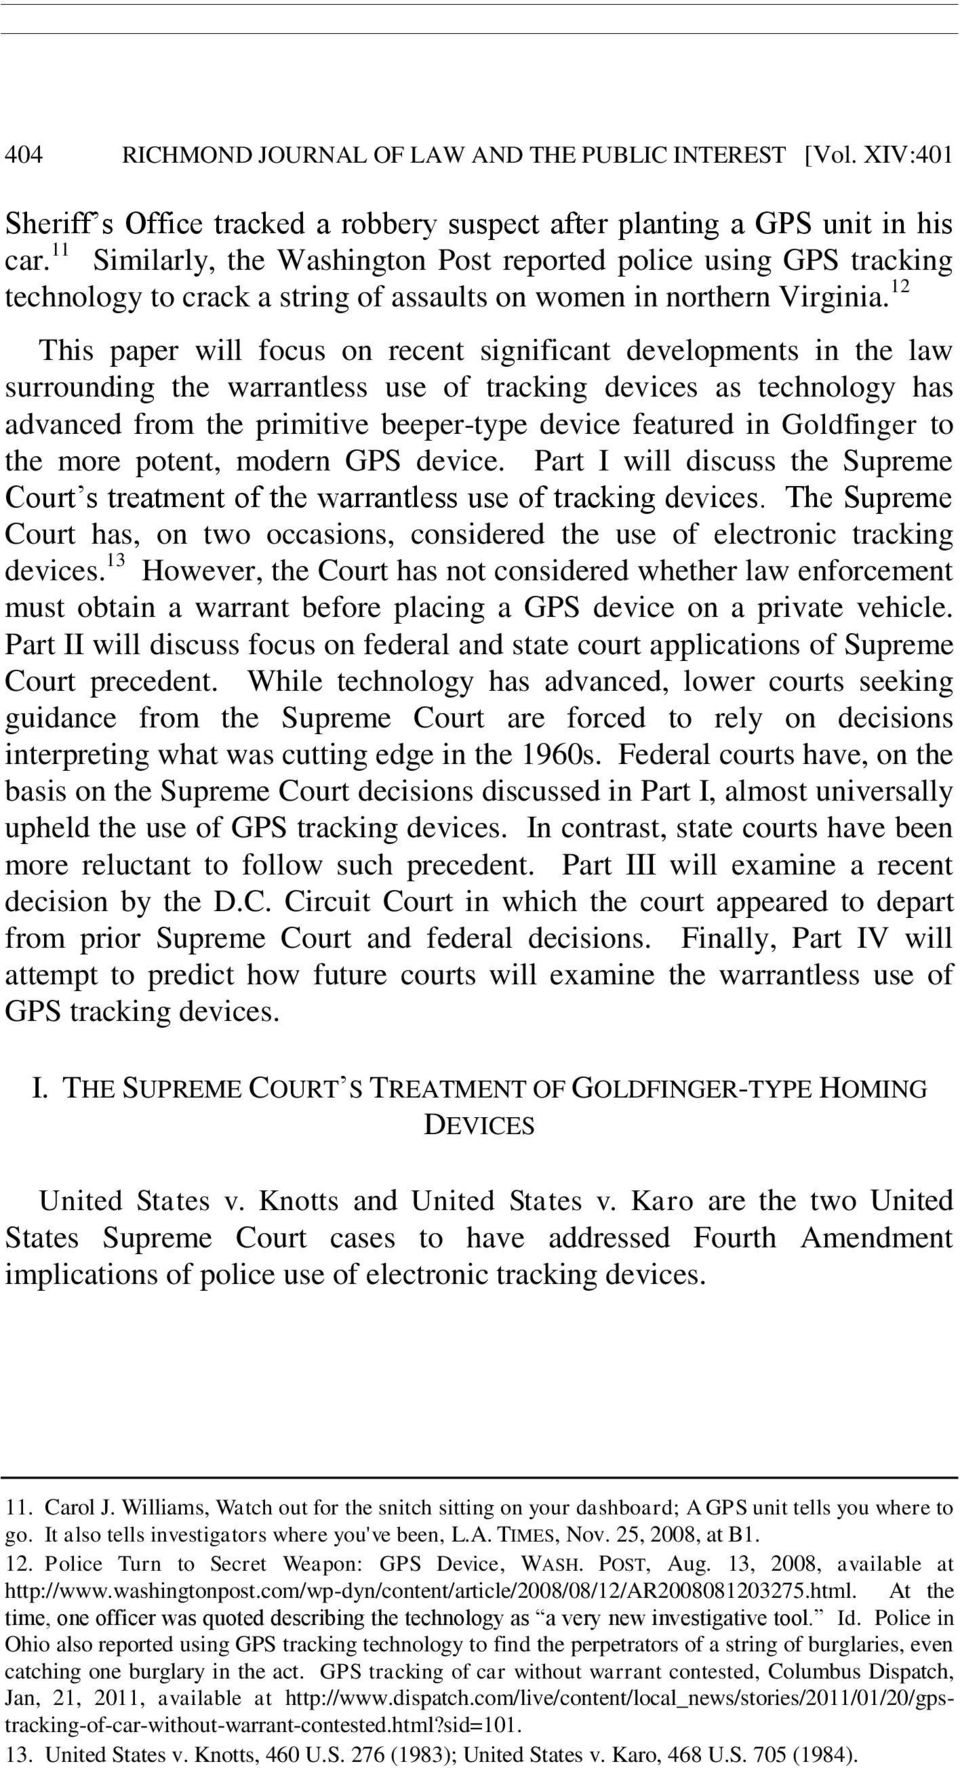 12 This paper will focus on recent significant developments in the law surrounding the warrantless use of tracking devices as technology has advanced from the primitive beeper-type device featured in